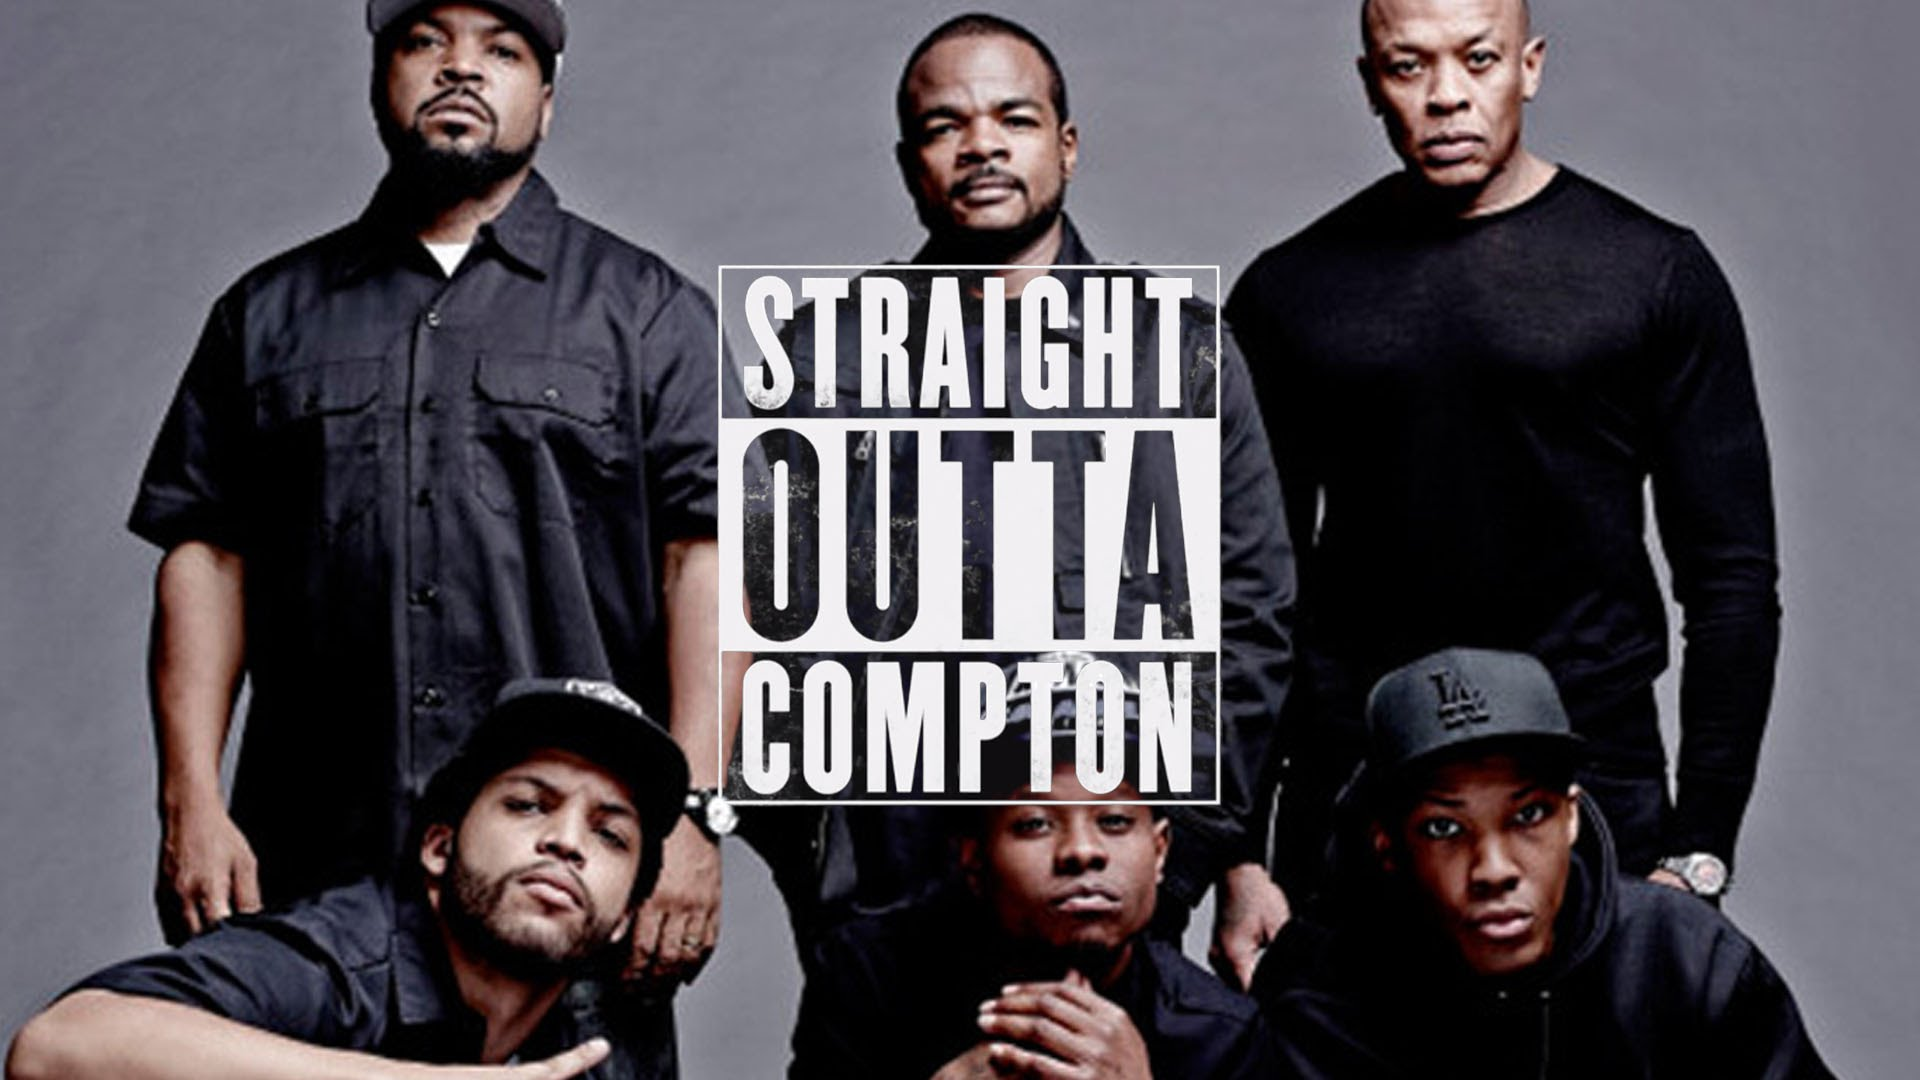 Straight outta compton release date in Sydney